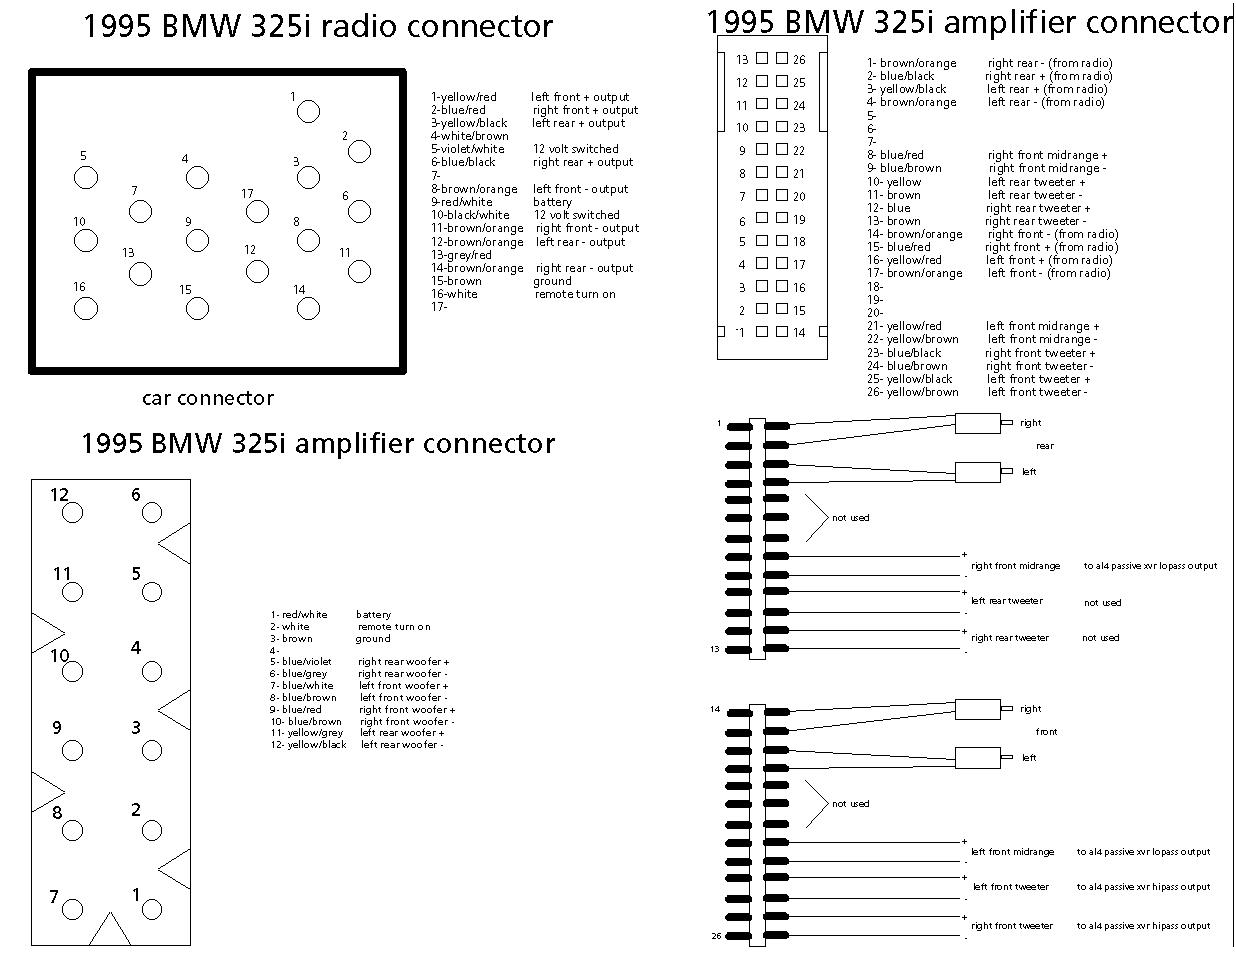 bmw z3 wiring harness diagram bmw e46 radio wiring harness bmw image wiring diagram bmw radio wiring diagram bmw image wiring